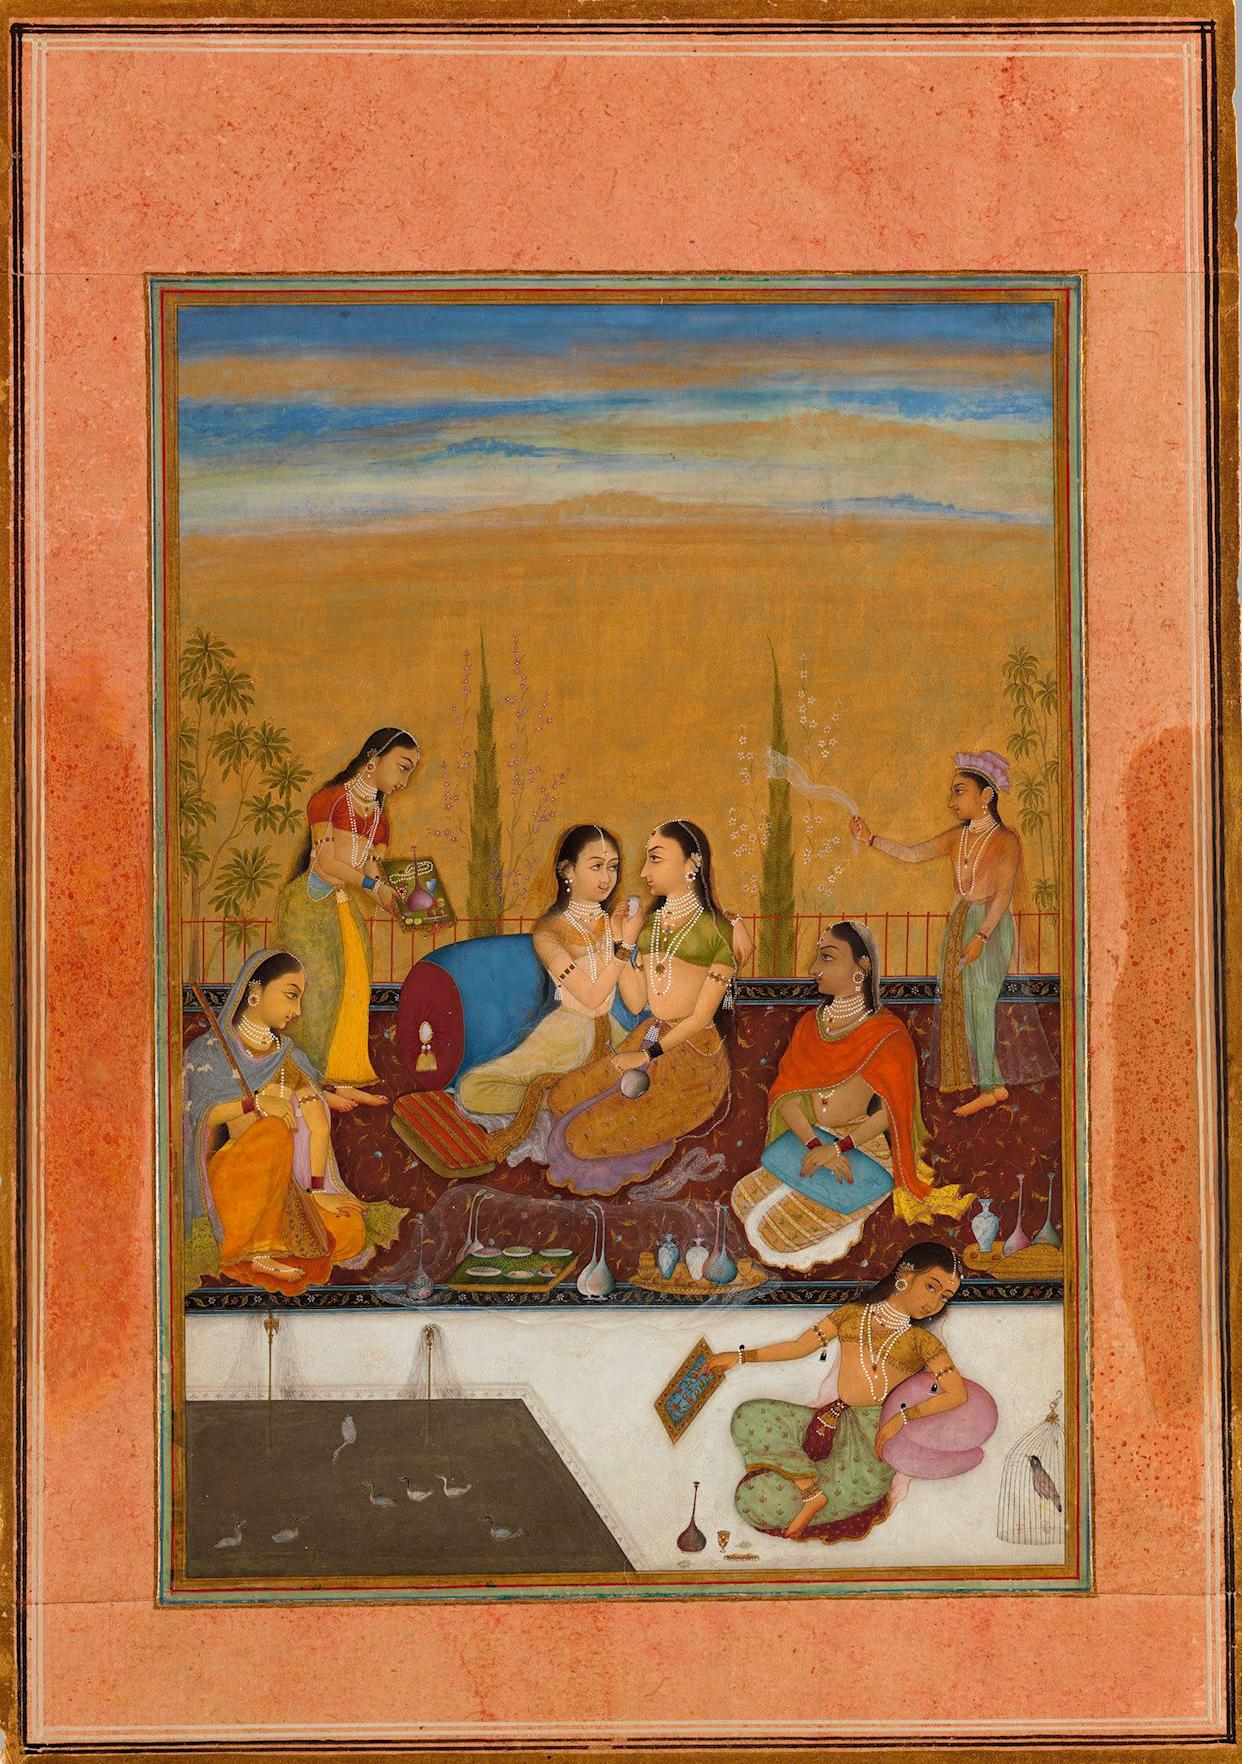 <strong>Ladies on a Terrace.</strong>&amp;nbsp;Painted by the artist Ruknuddin (active ca. 1650&amp;ndash;ca.&amp;nbsp;1697)&amp;nbsp;Rajasthan, kingdom of Bikaner, dated 1675&amp;nbsp;Opaque watercolor, black ink, and gold on paper; wide&amp;nbsp;light brown border with variously colored inner rules;&amp;nbsp;painting 7 5/8 x 5 5/16 in. (19.4 x 13.5 cm),&amp;nbsp;Promised Gift of the Kronos Collections, 2015